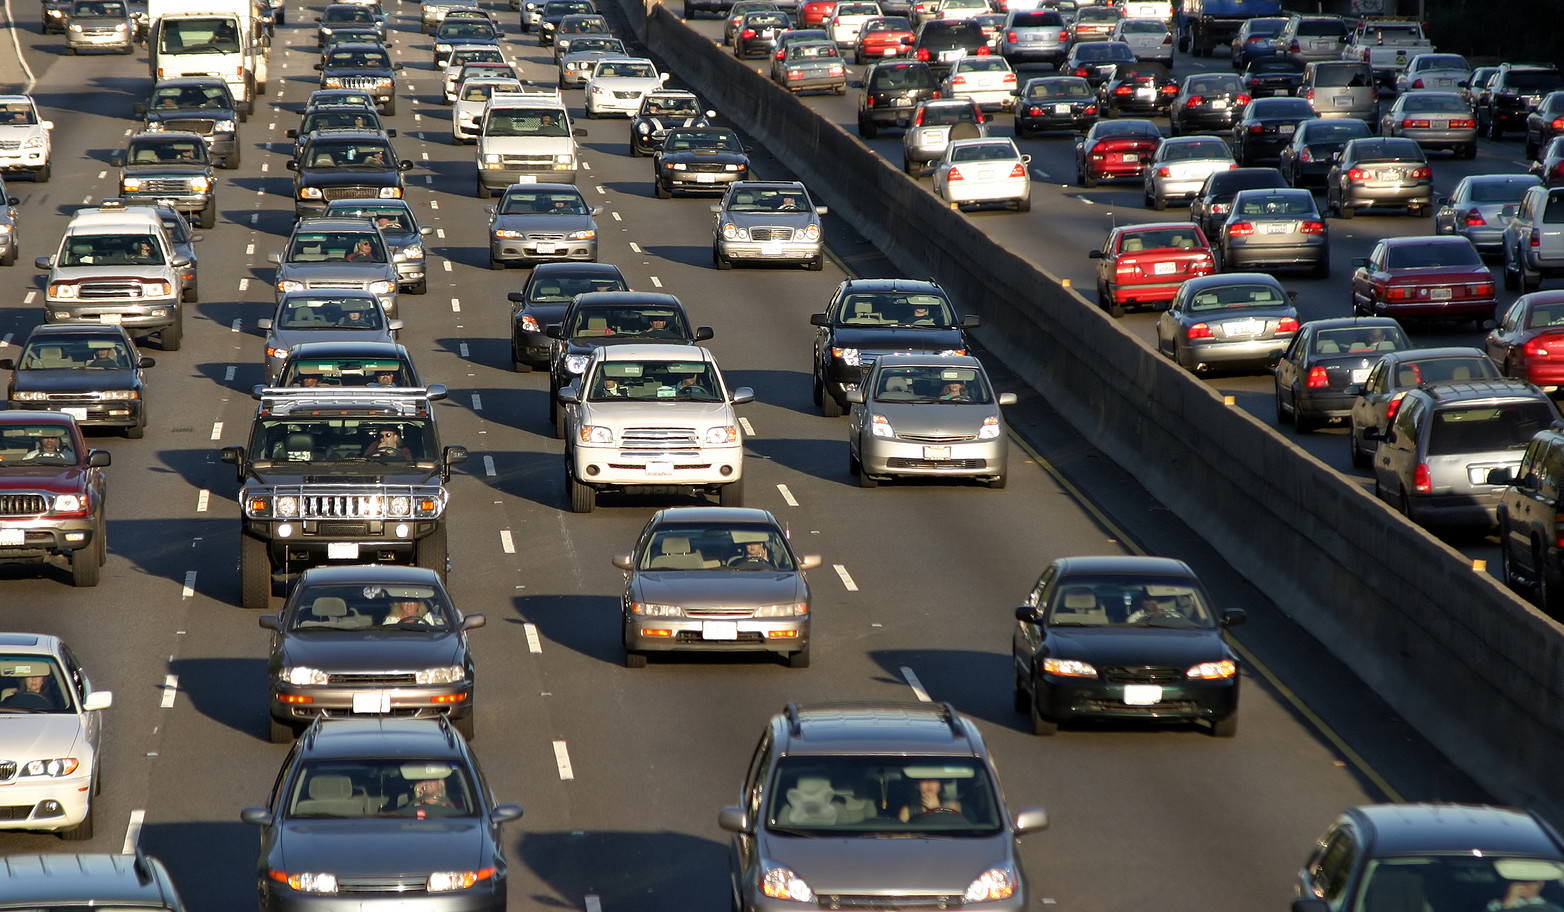 Southbound Highway 101 lane closed until April 15